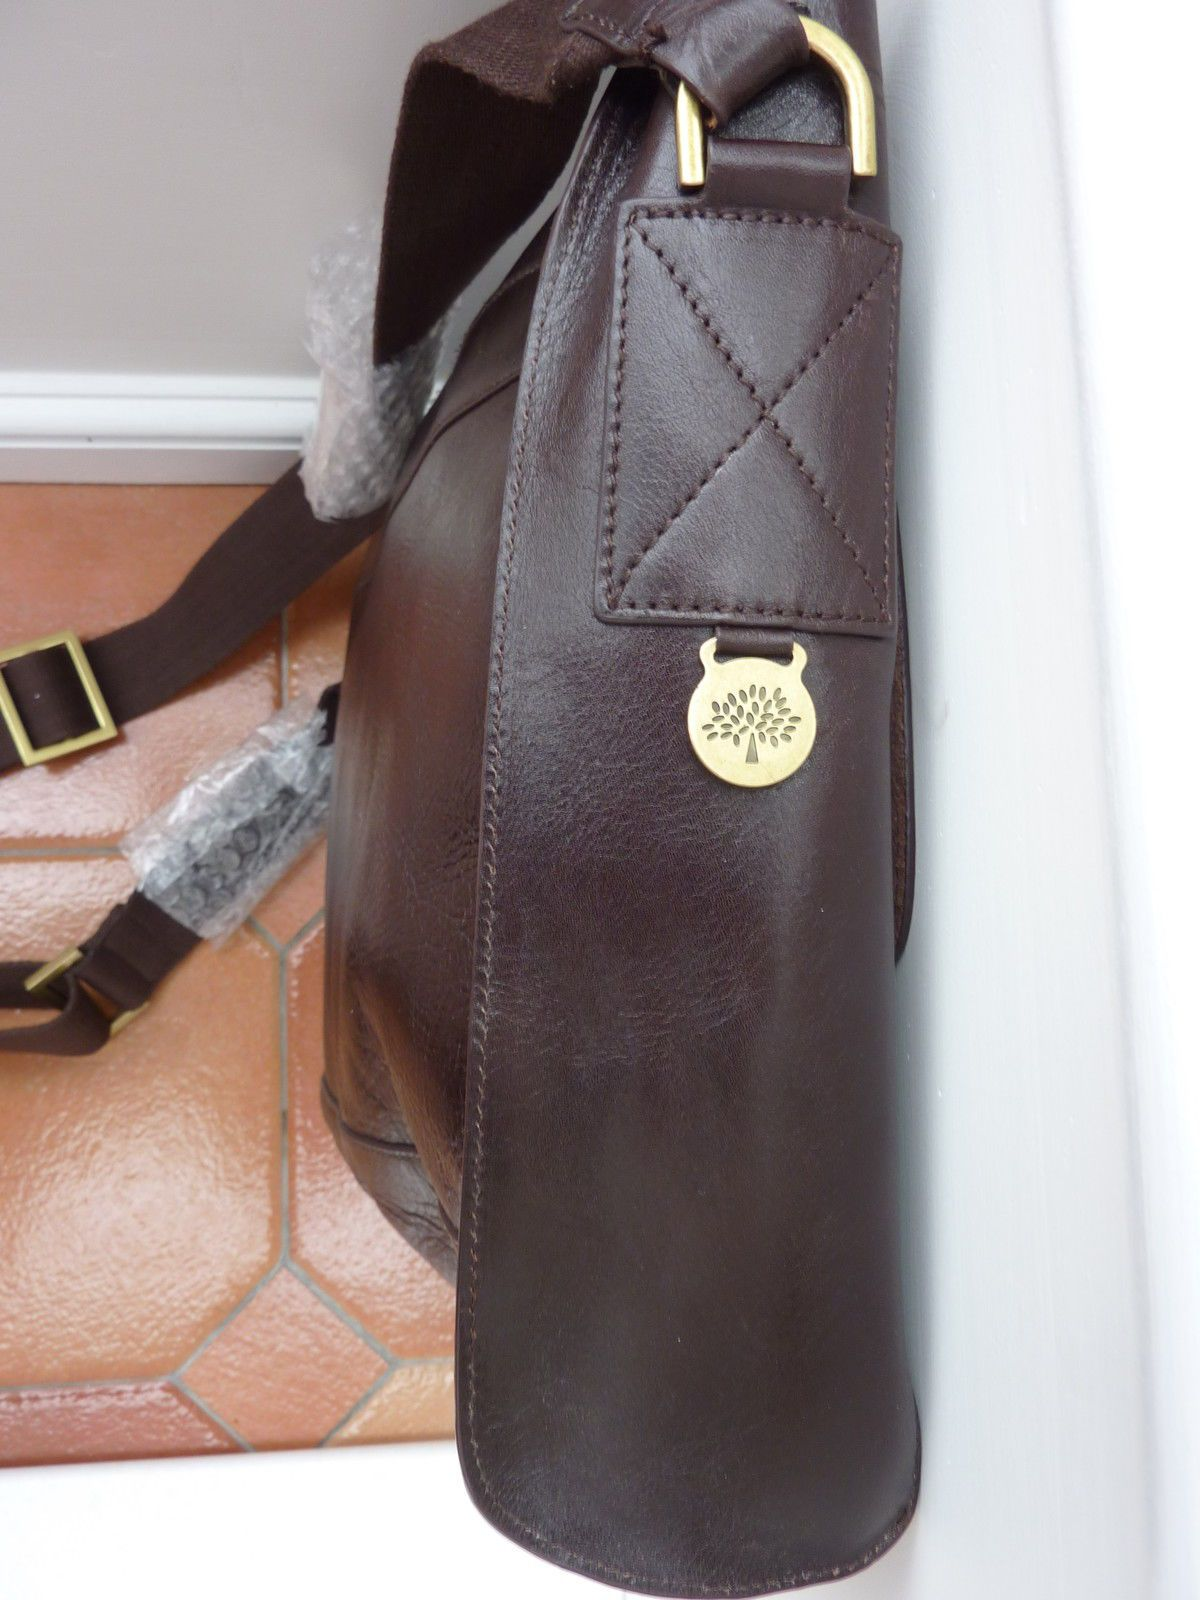 41480cb4e44e Mulberry - Brynmore Messenger Bag - £795 - Brown Leather - triple lock in  Clothes